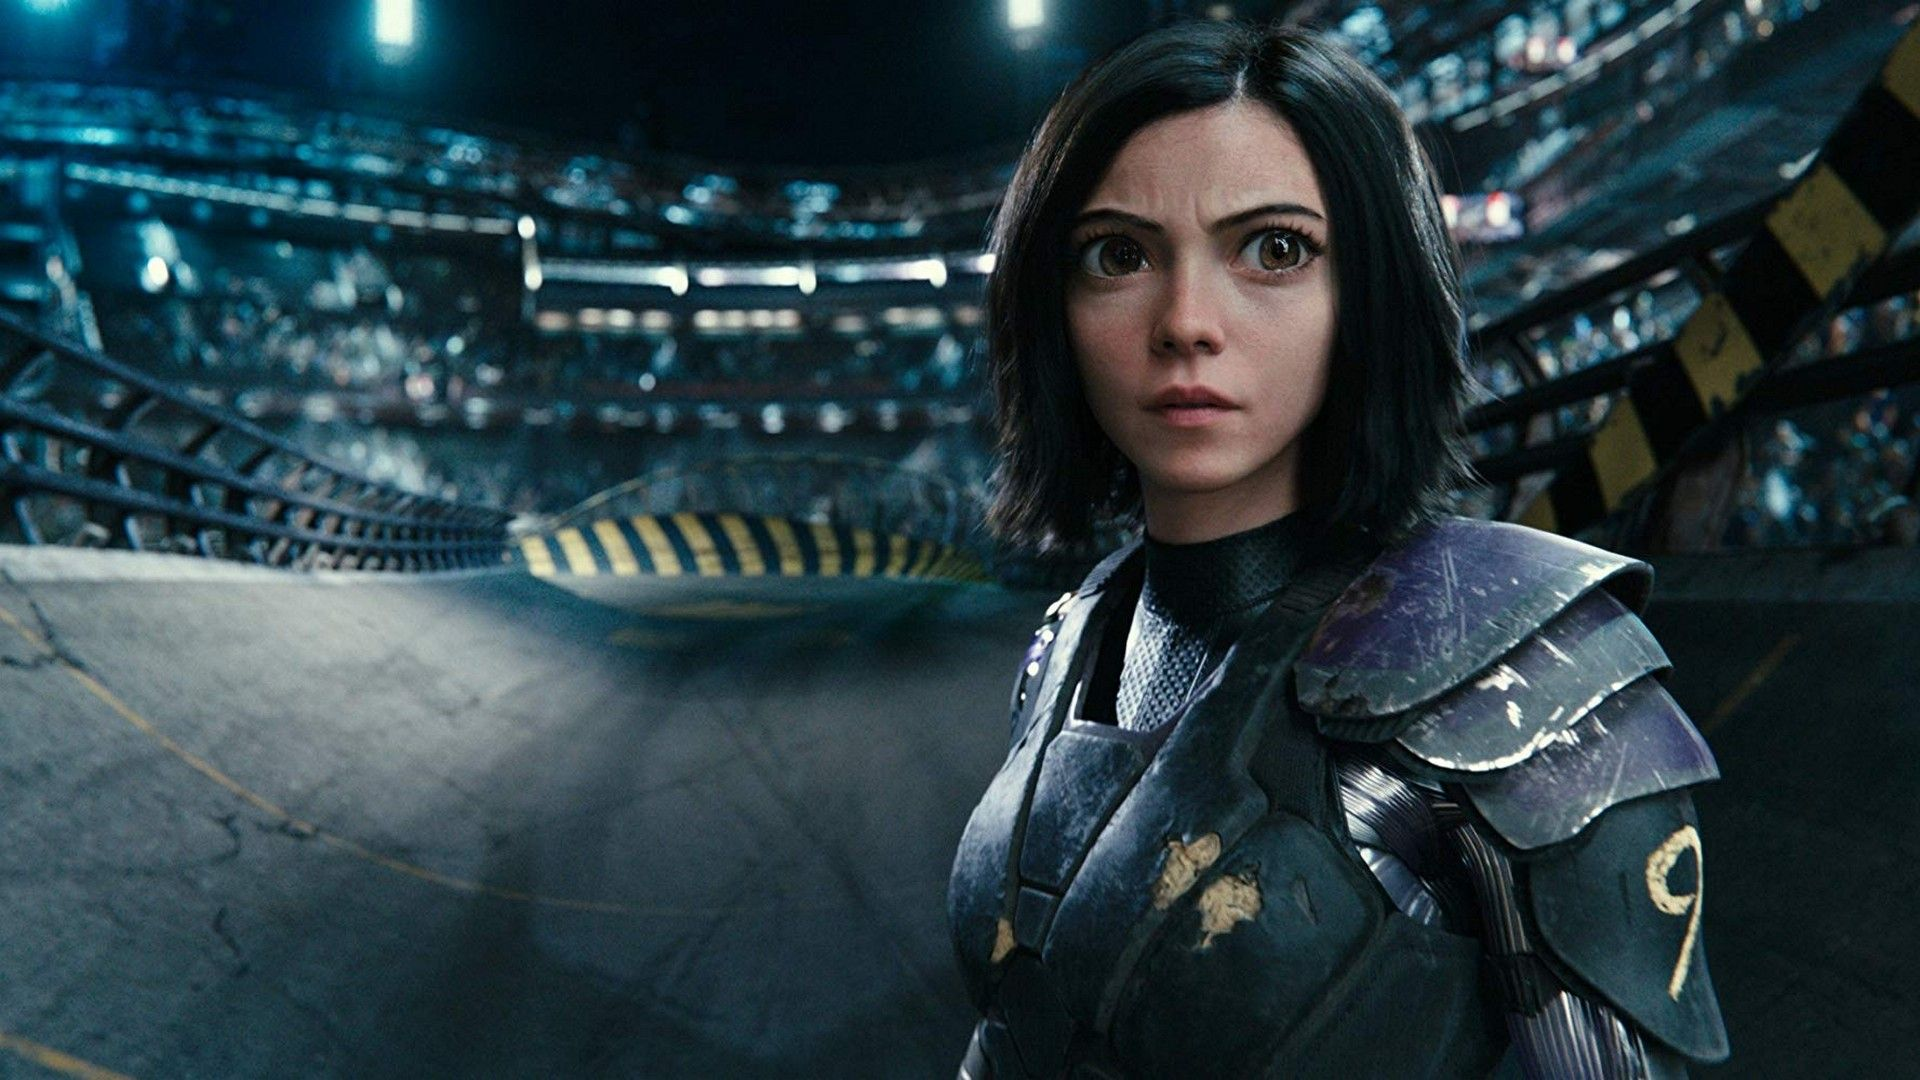 Alita Battle Angel Wallpaper Hd Angel Movie James Cameron